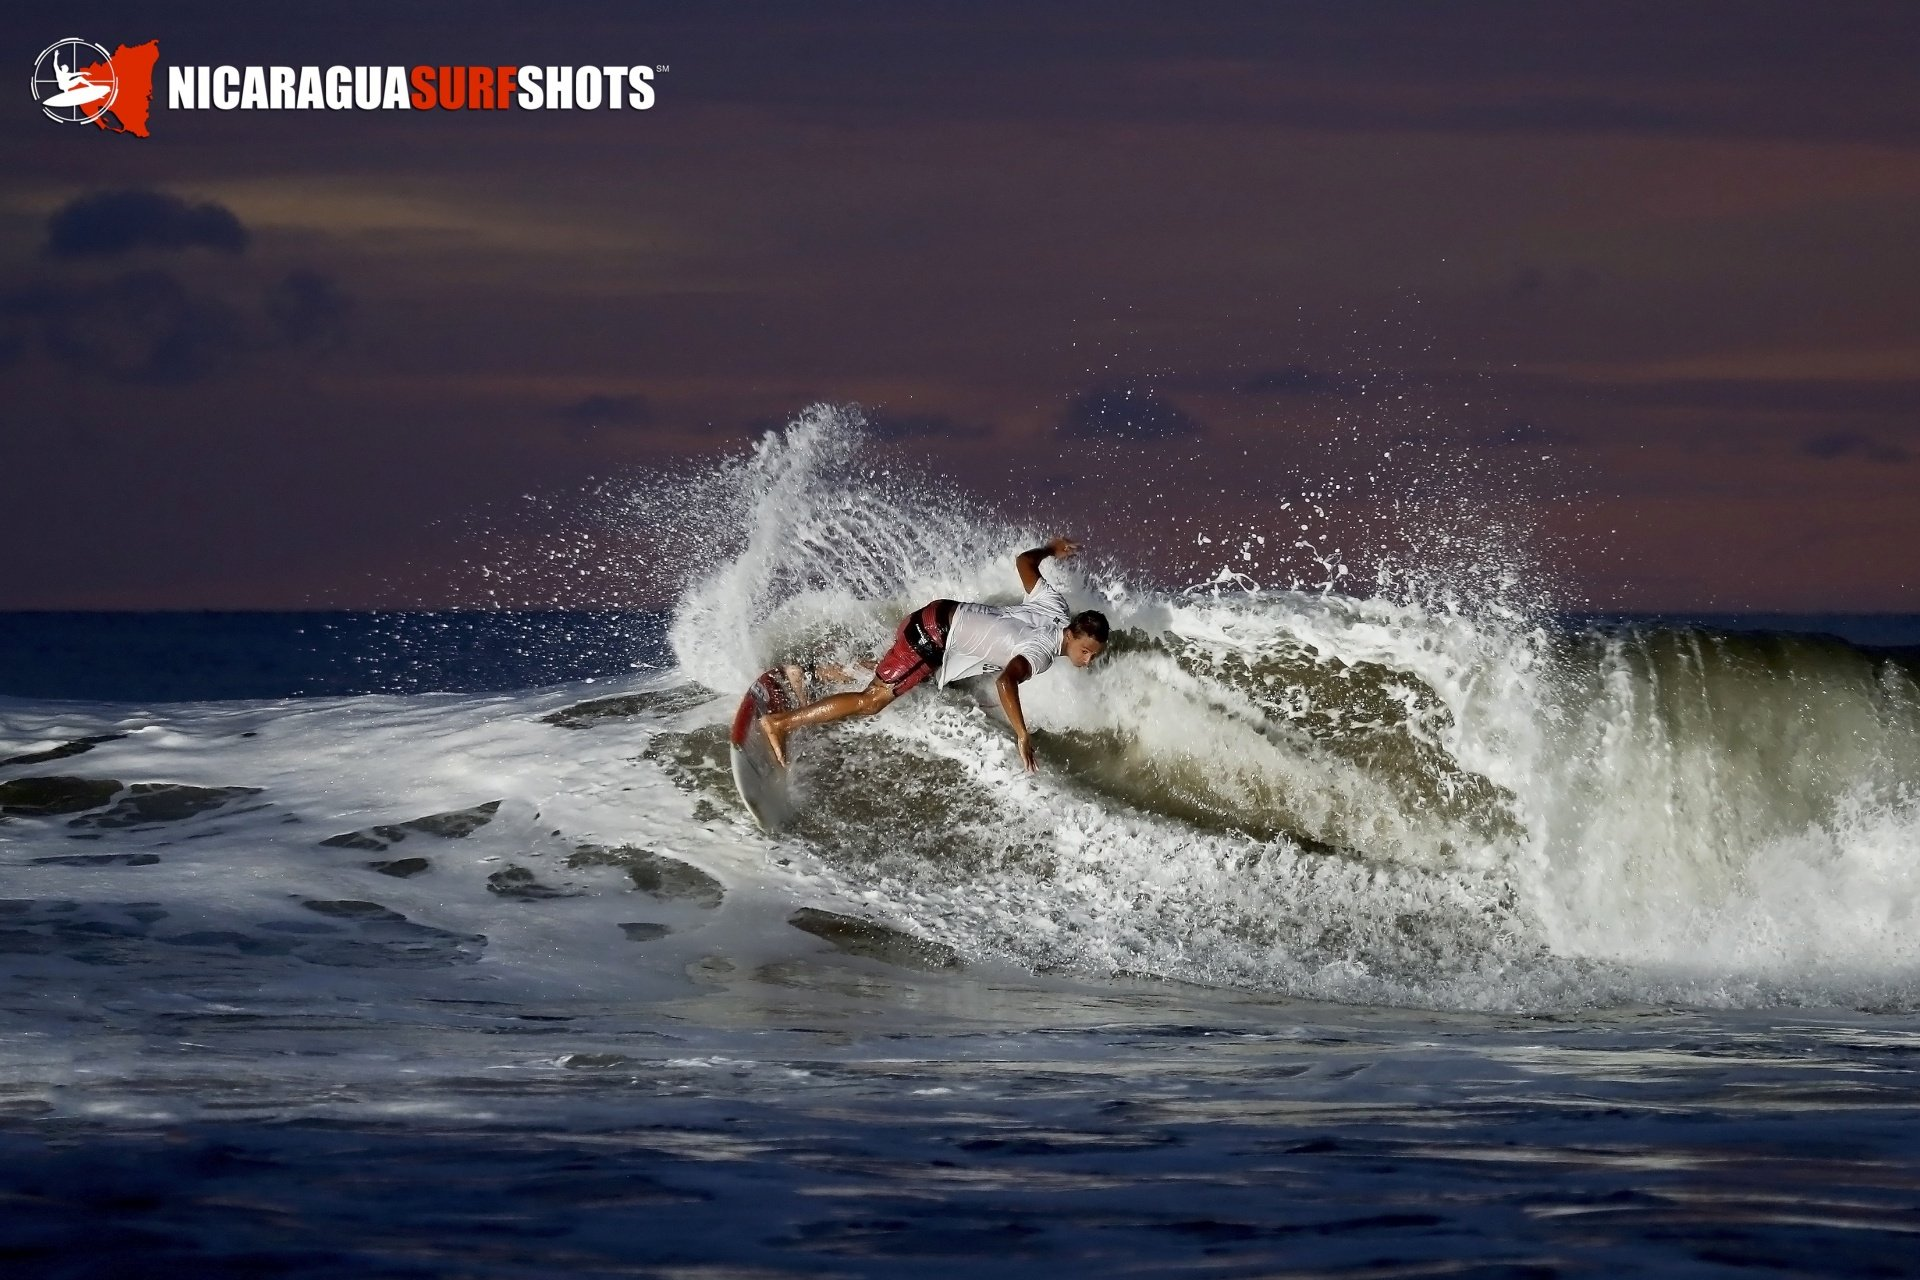 Nica Surf Shots's photo of Playa Santana